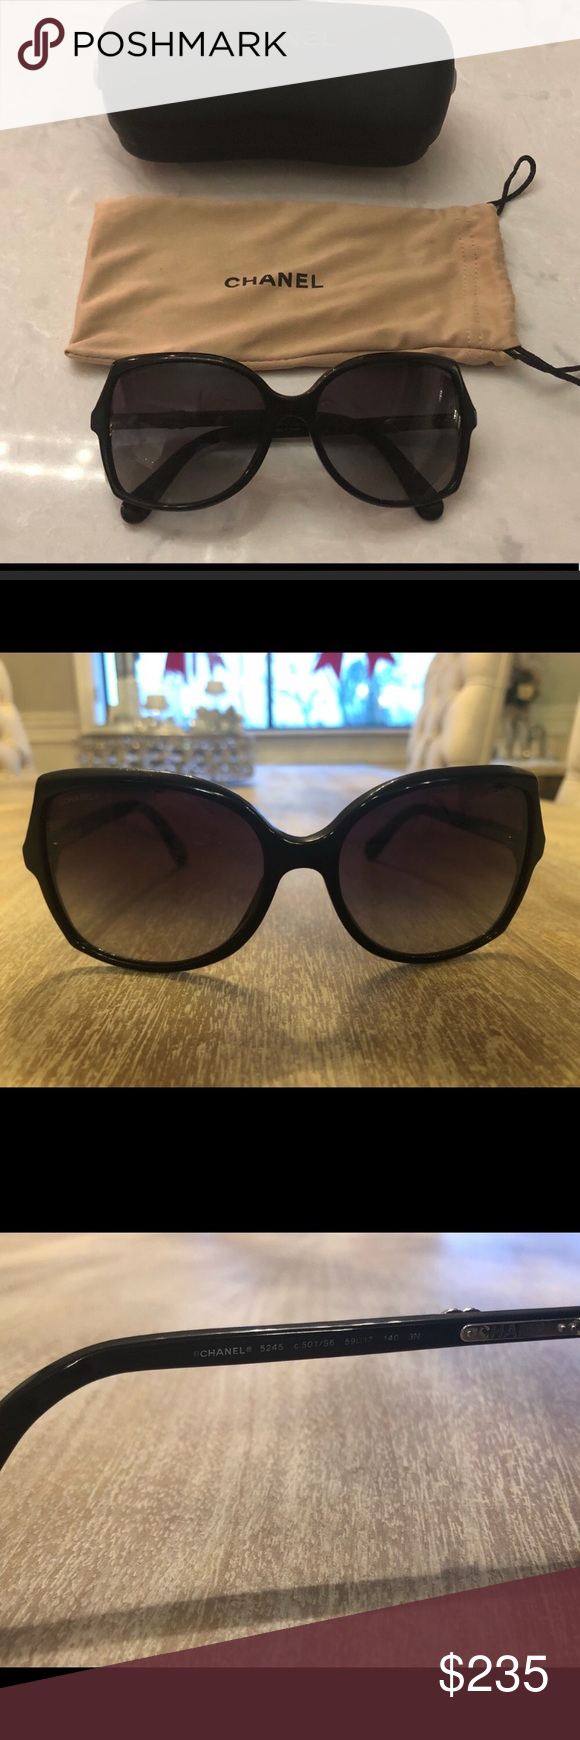 3264d1c3ea7f CHANEL SUNGLASSES Black Chanel sunglasses, gently used condition. Some  scratches on frame from normal wear and tear. Case and dust bag included  CHANEL ...